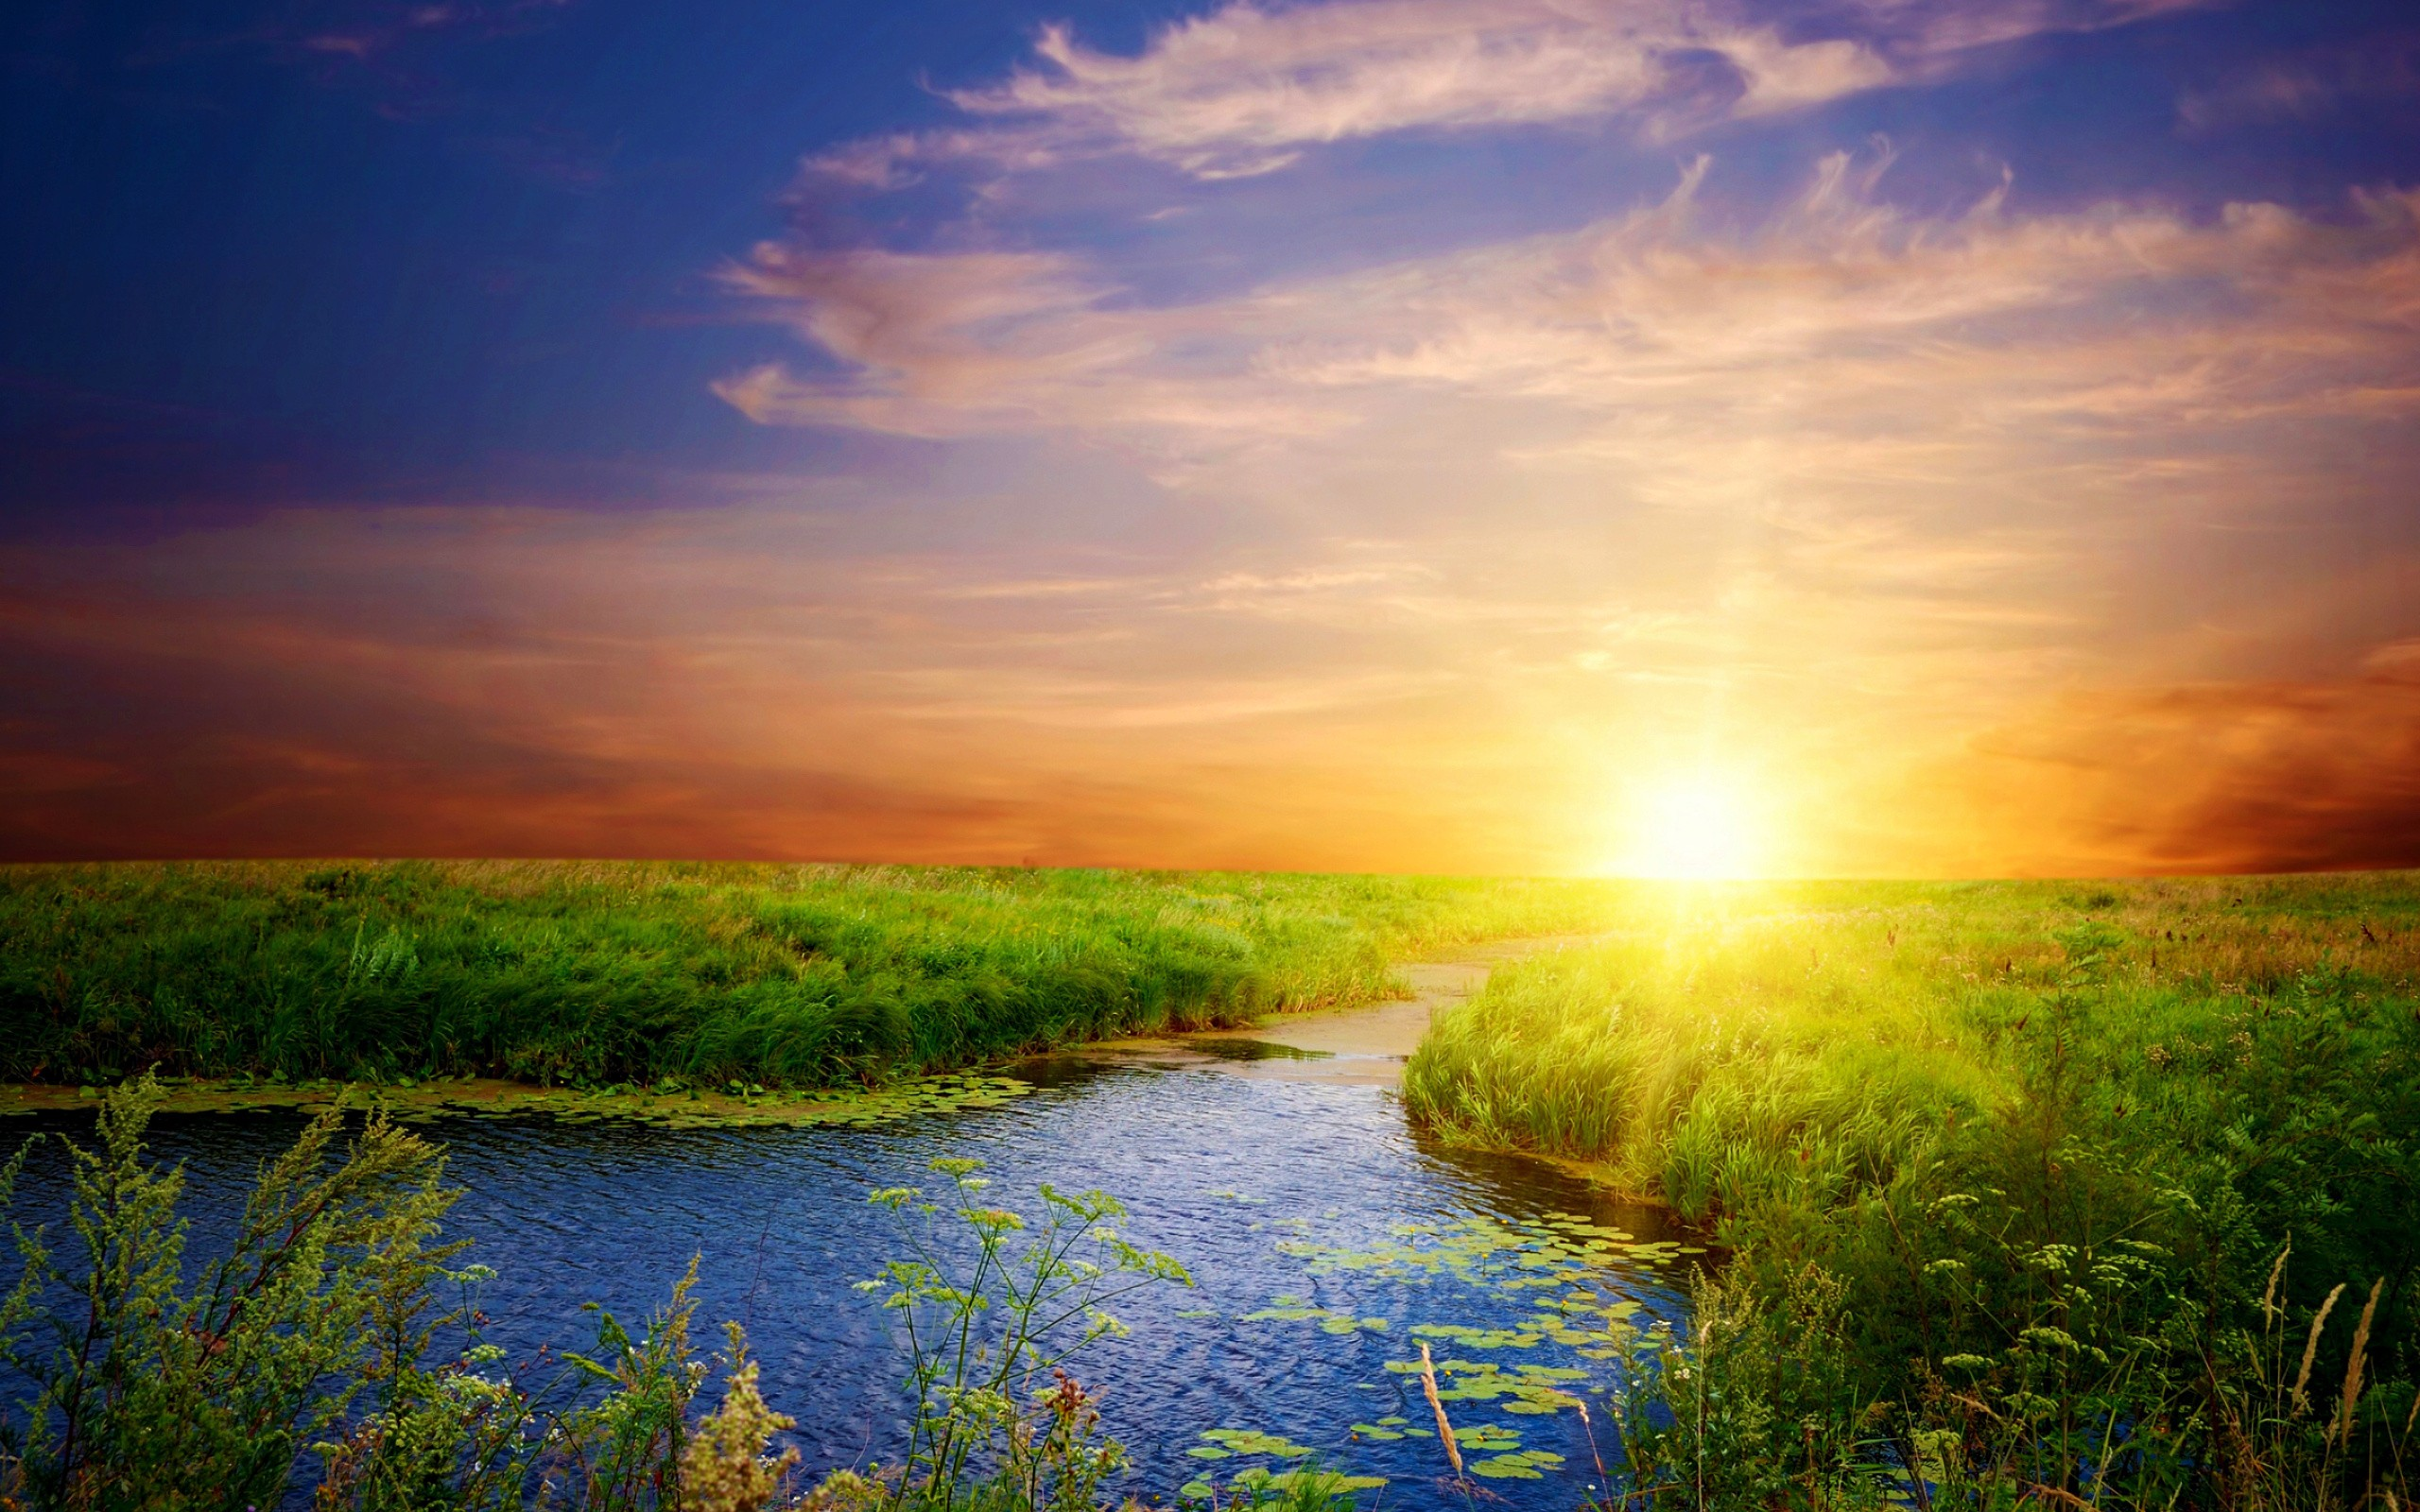 Beautiful Landscapes Sunlight Wallpaper Rivers Best Source For 2560x1600px